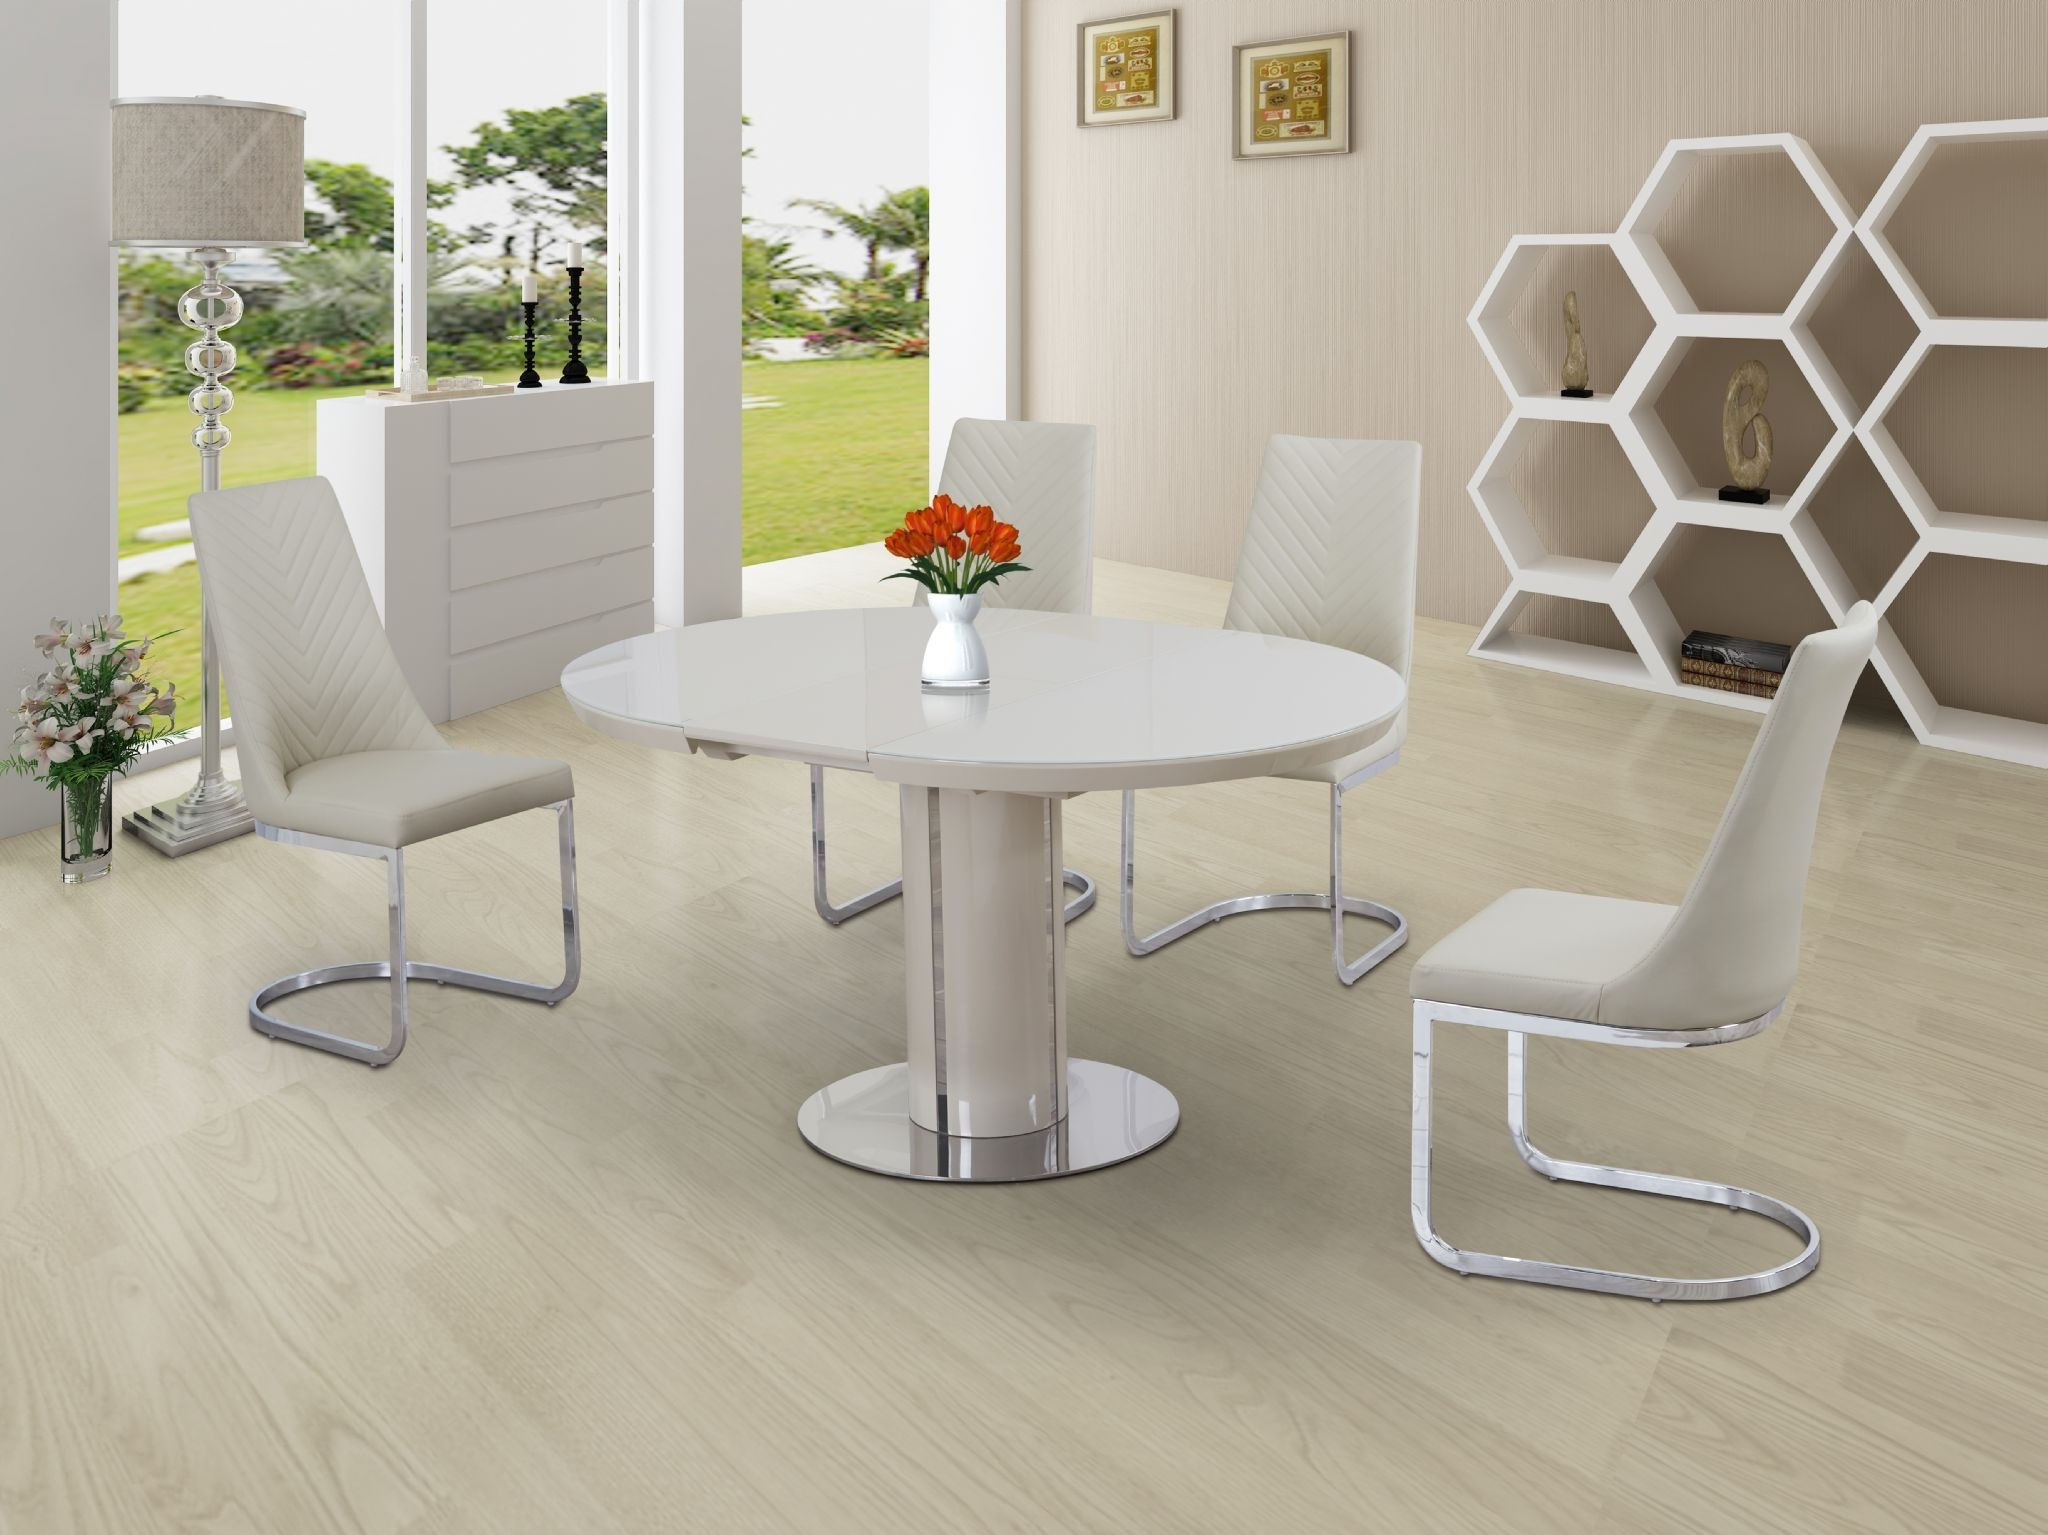 Small Round Extending Dining Tables Intended For 2018 Buy Cream Small Round Extendable Dining Table Today (View 18 of 25)